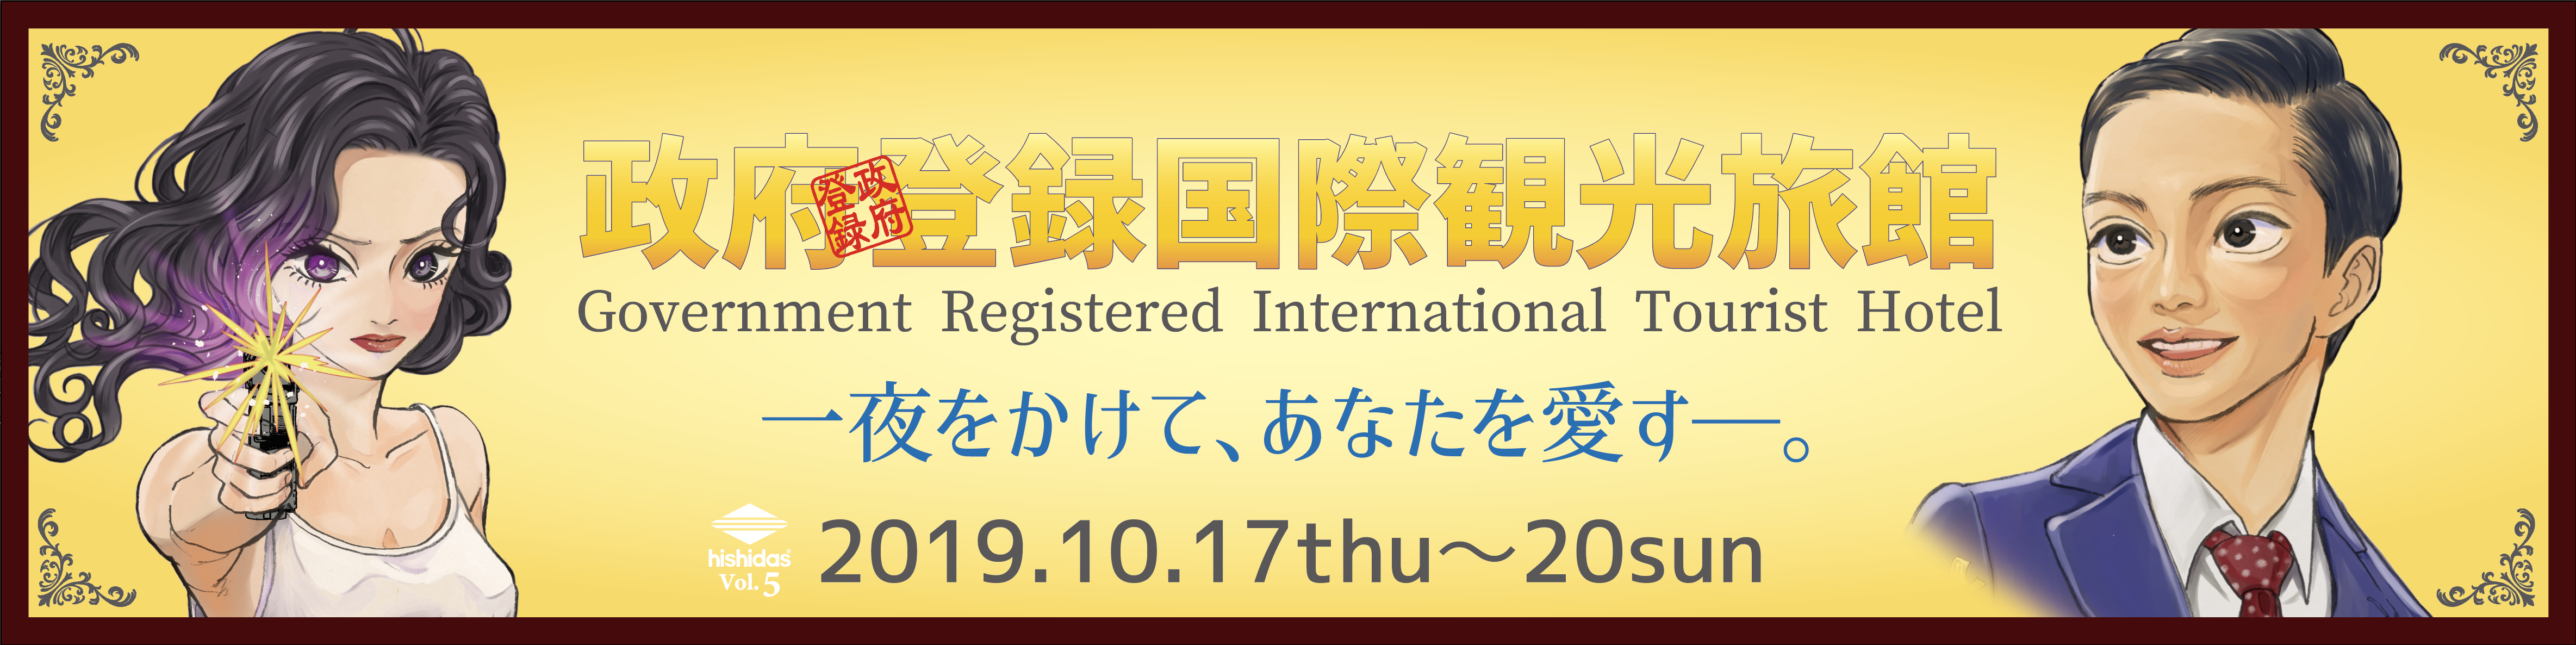 『政府登録国際観光旅館』Government Registered International Tourist Hotel